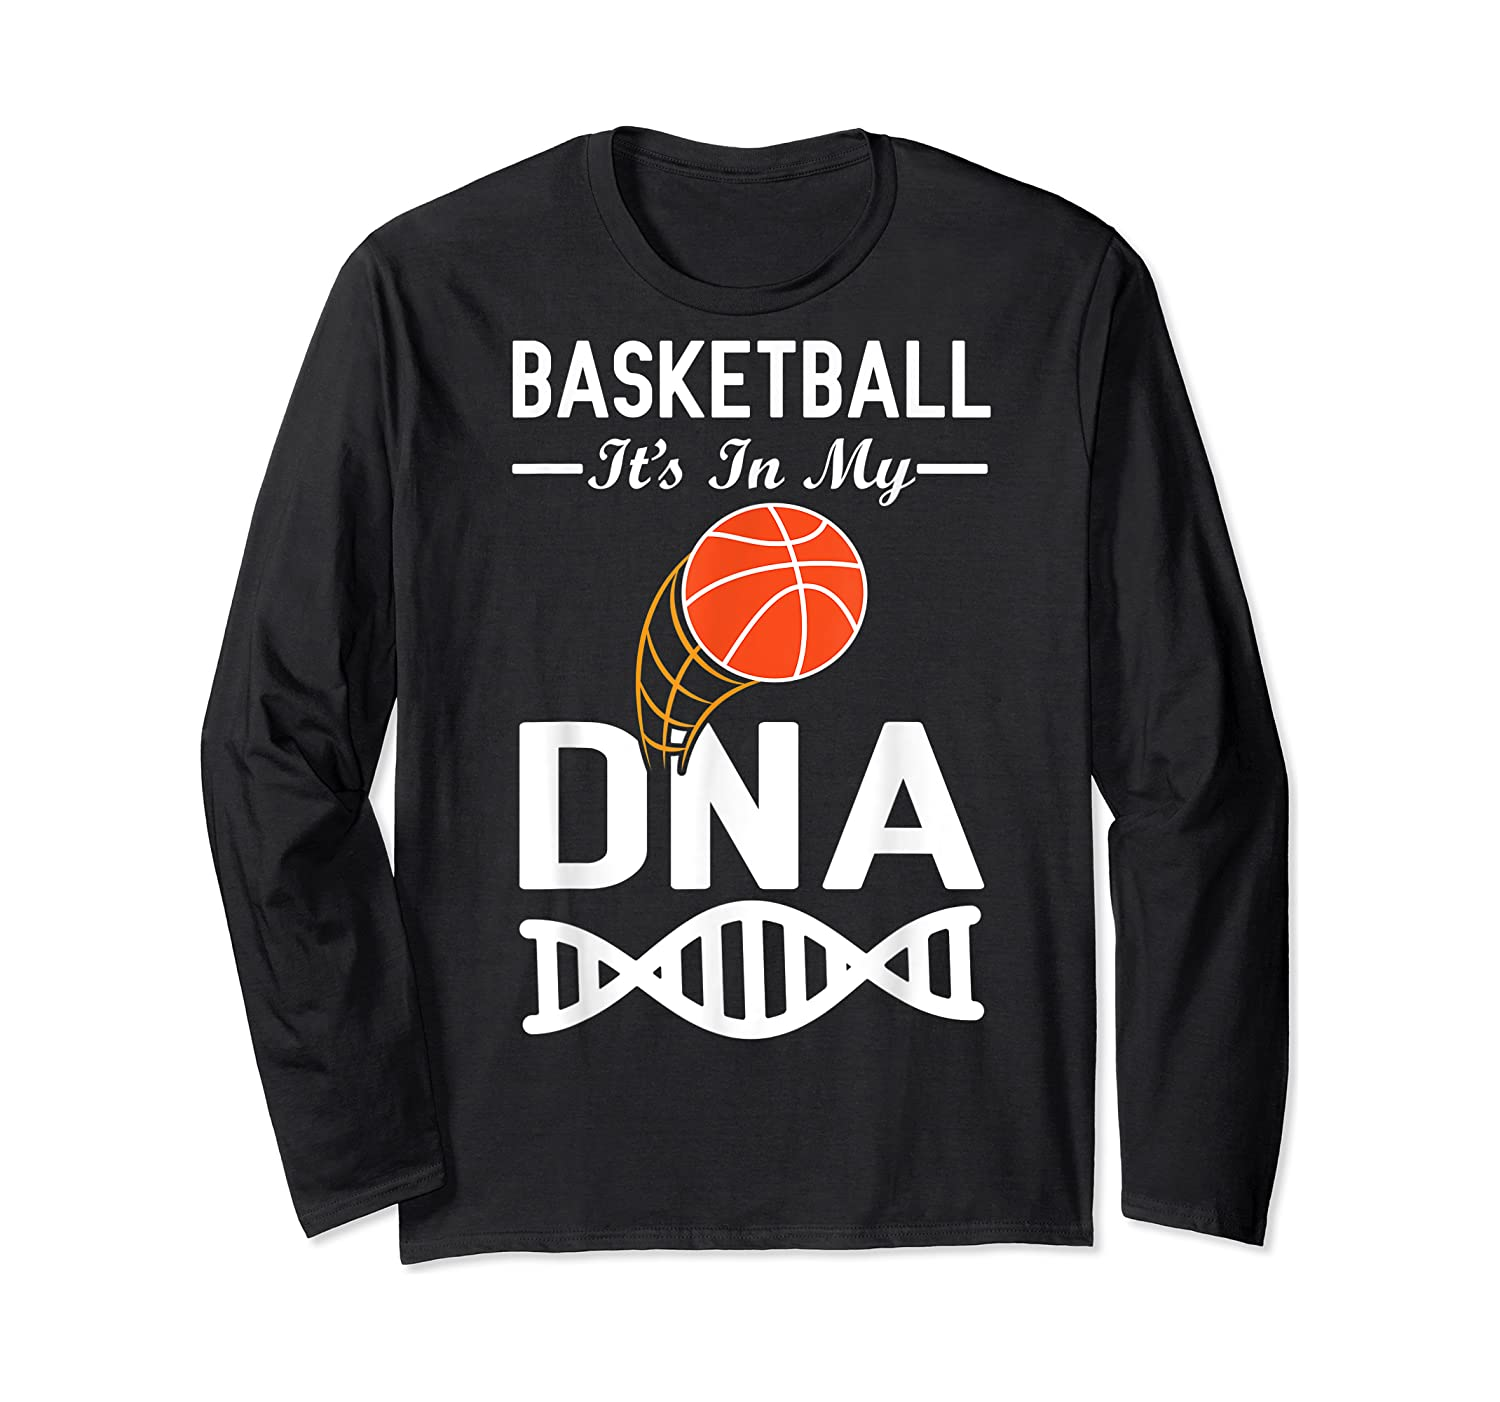 Sports Lover Tees - Basketball It's In My Dna T-shirt Long Sleeve T-shirt